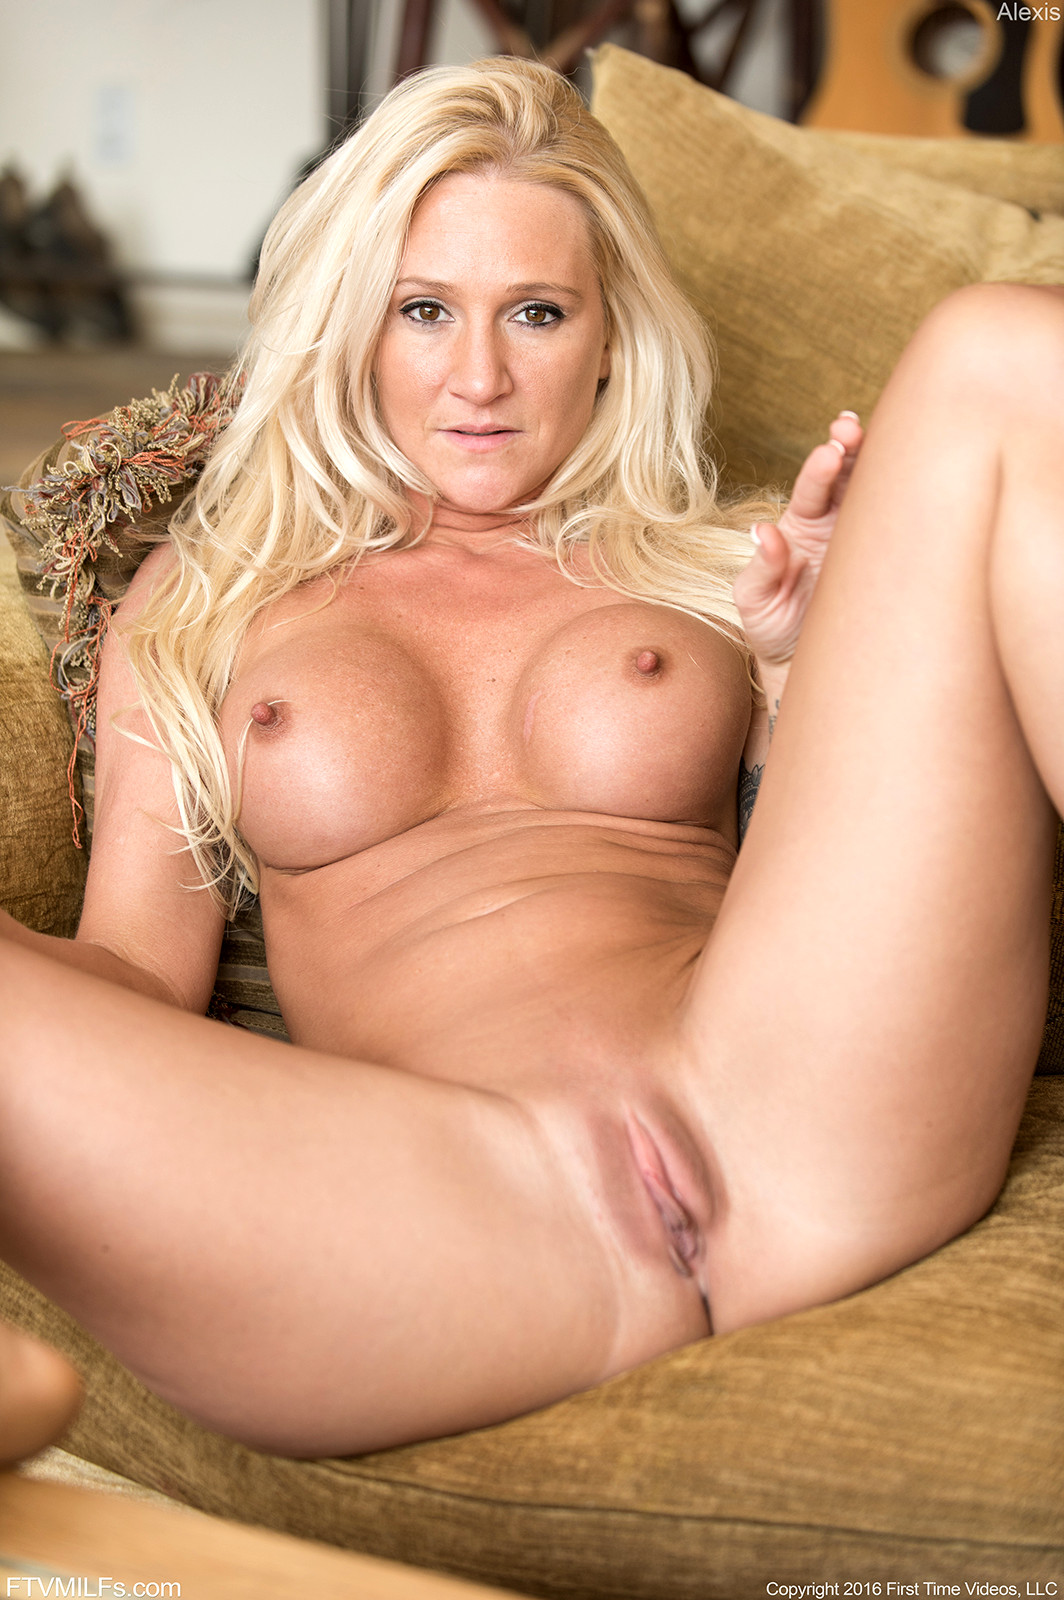 Babe Today Ftv Milfs Alexis Malone Updated Big Tits -9322